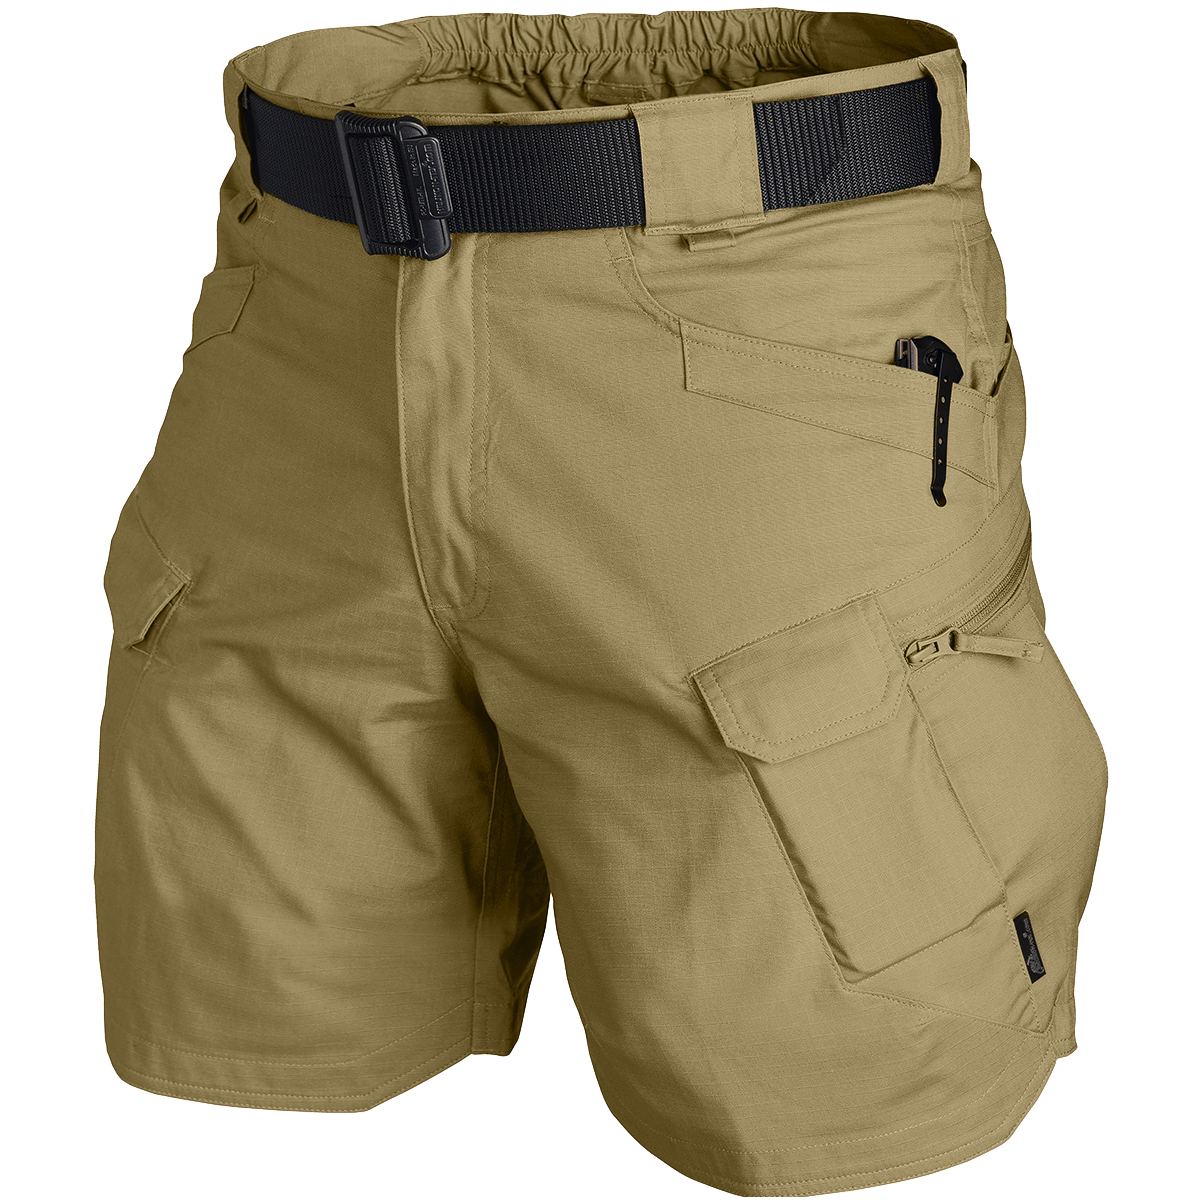 Details about Helikon Uts Tactical Urban Army Shorts Mens 8.5